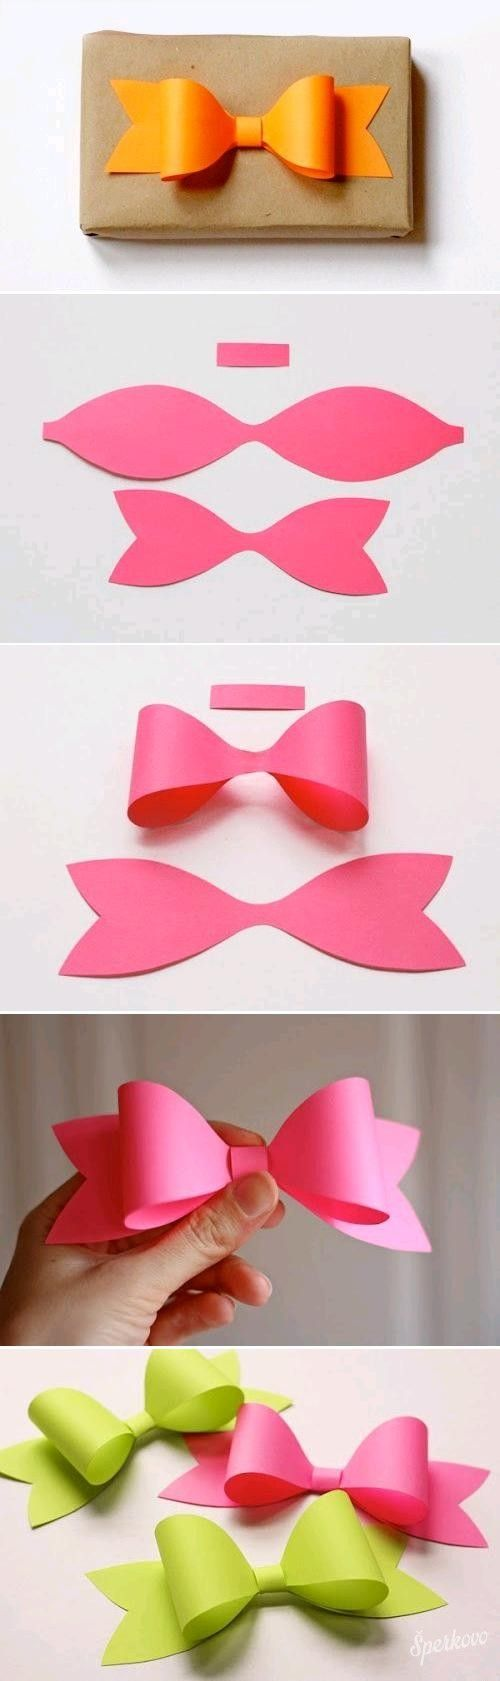 DIY - its paper but im sure it would work with ribbon! I LUV BOWS!: